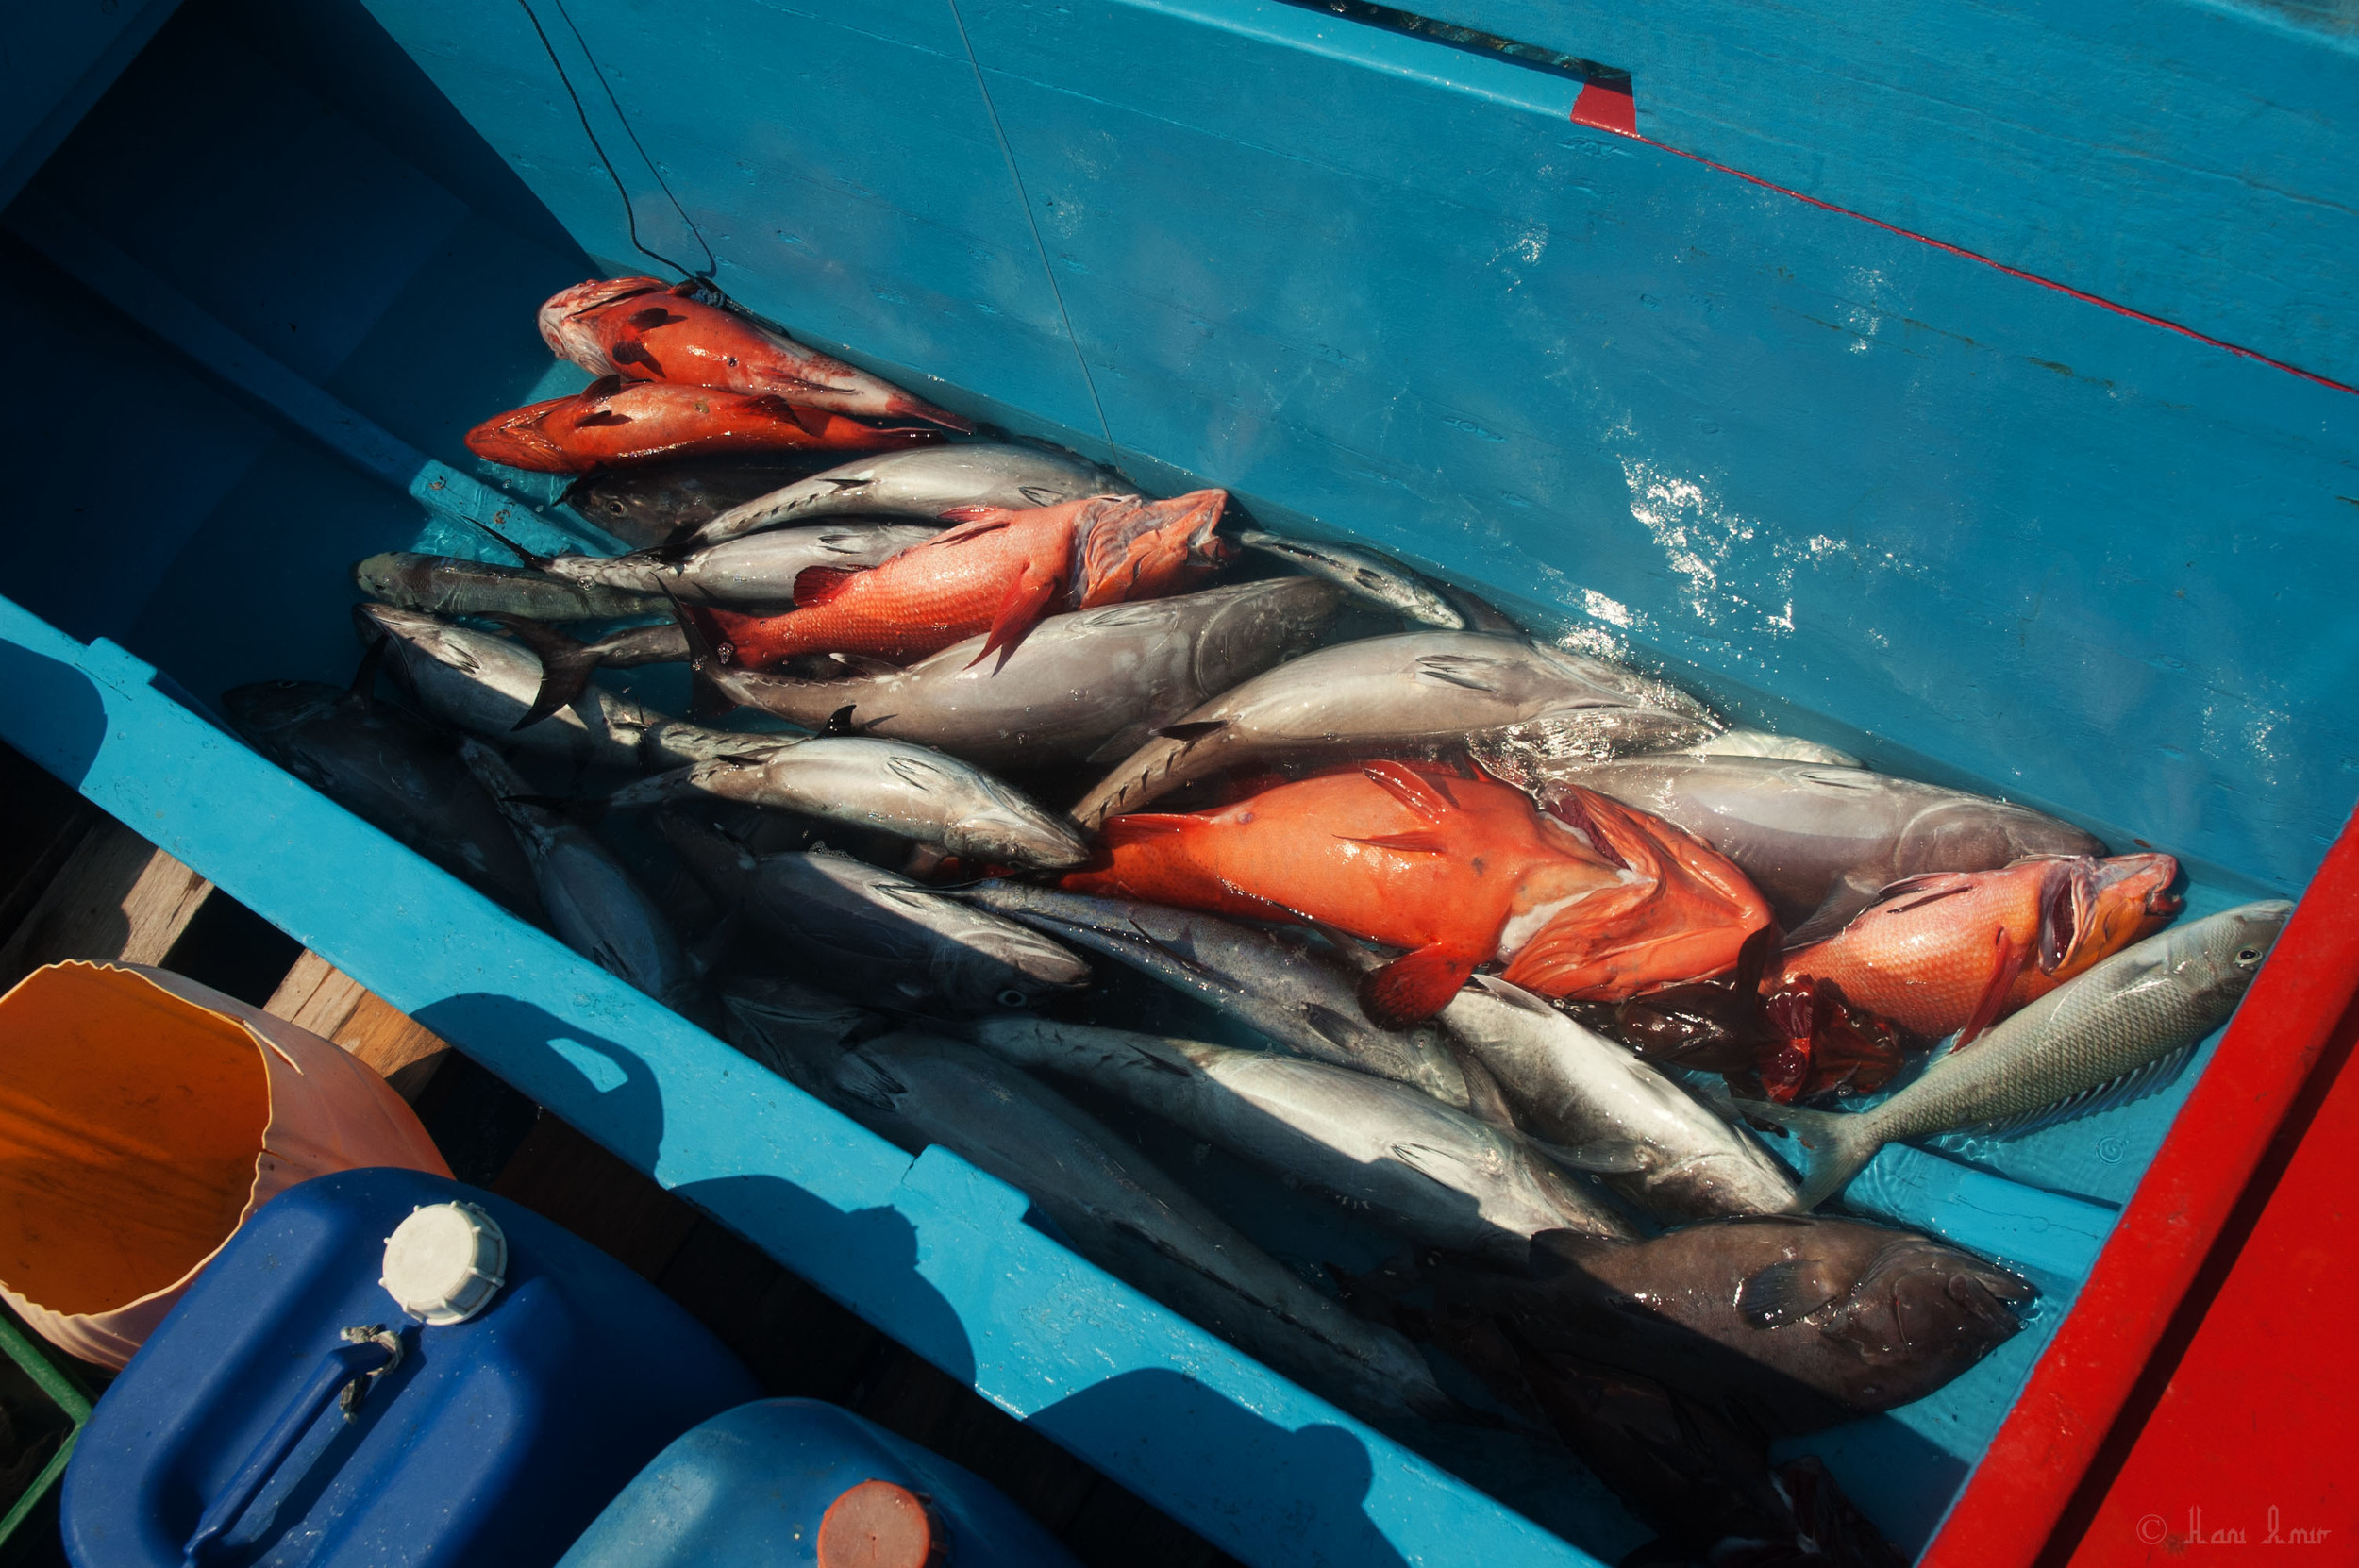 The catch is stored in the hull until they reach the resort. Here you can see a variety of fish from snappers and groupers to jobfish and trevally. Juveniles and unwanted fish are usually released back.